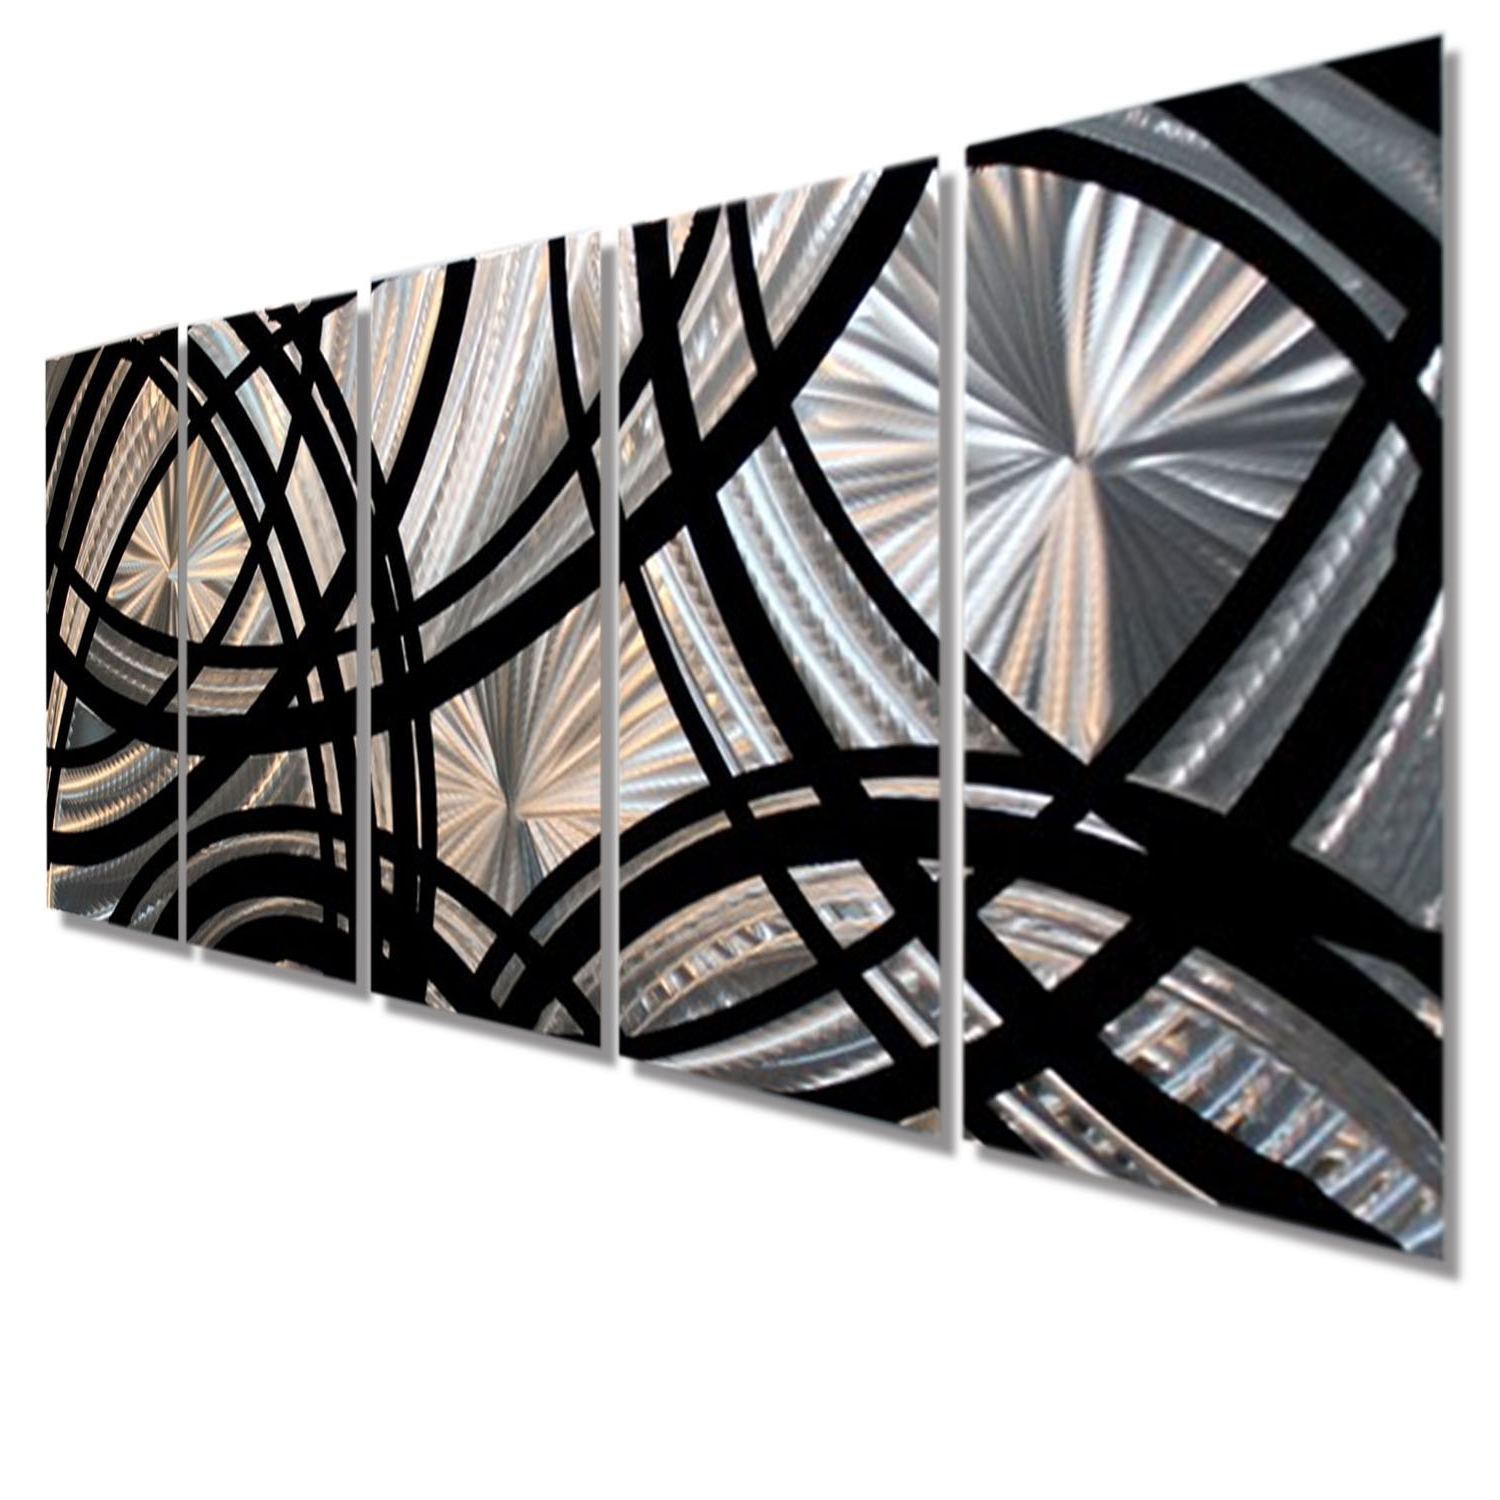 2018 Fast And Furious – All Natural Silver & Black Contemporary Metal Regarding Black Metal Wall Art (Gallery 12 of 20)